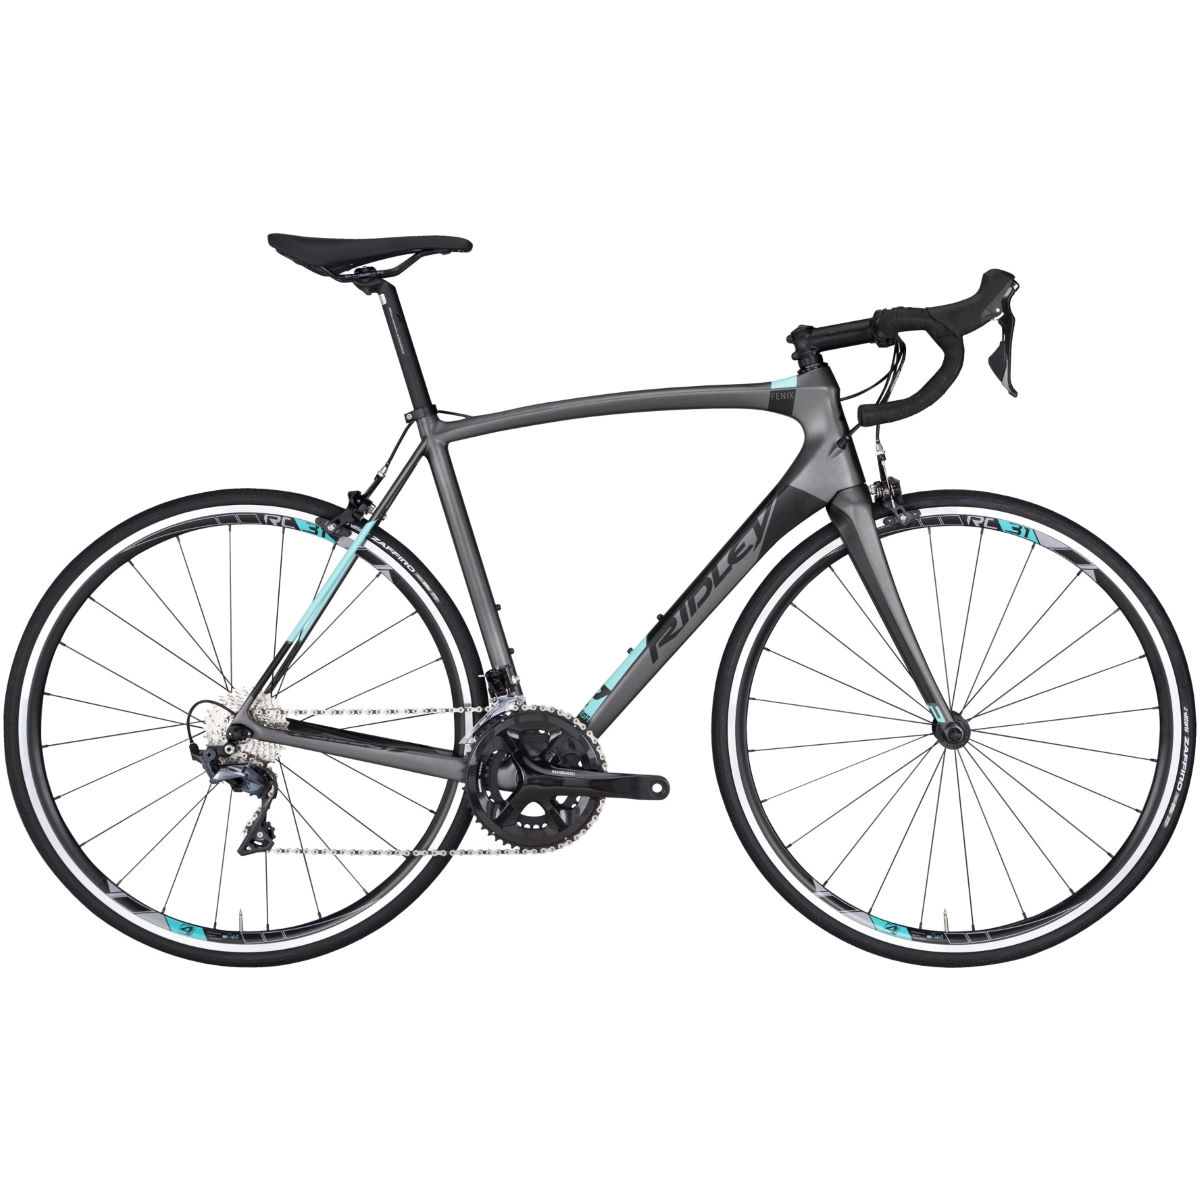 Ridley Ridley Fenix C 105 Mix Road Bike (2019)   Road Bikes